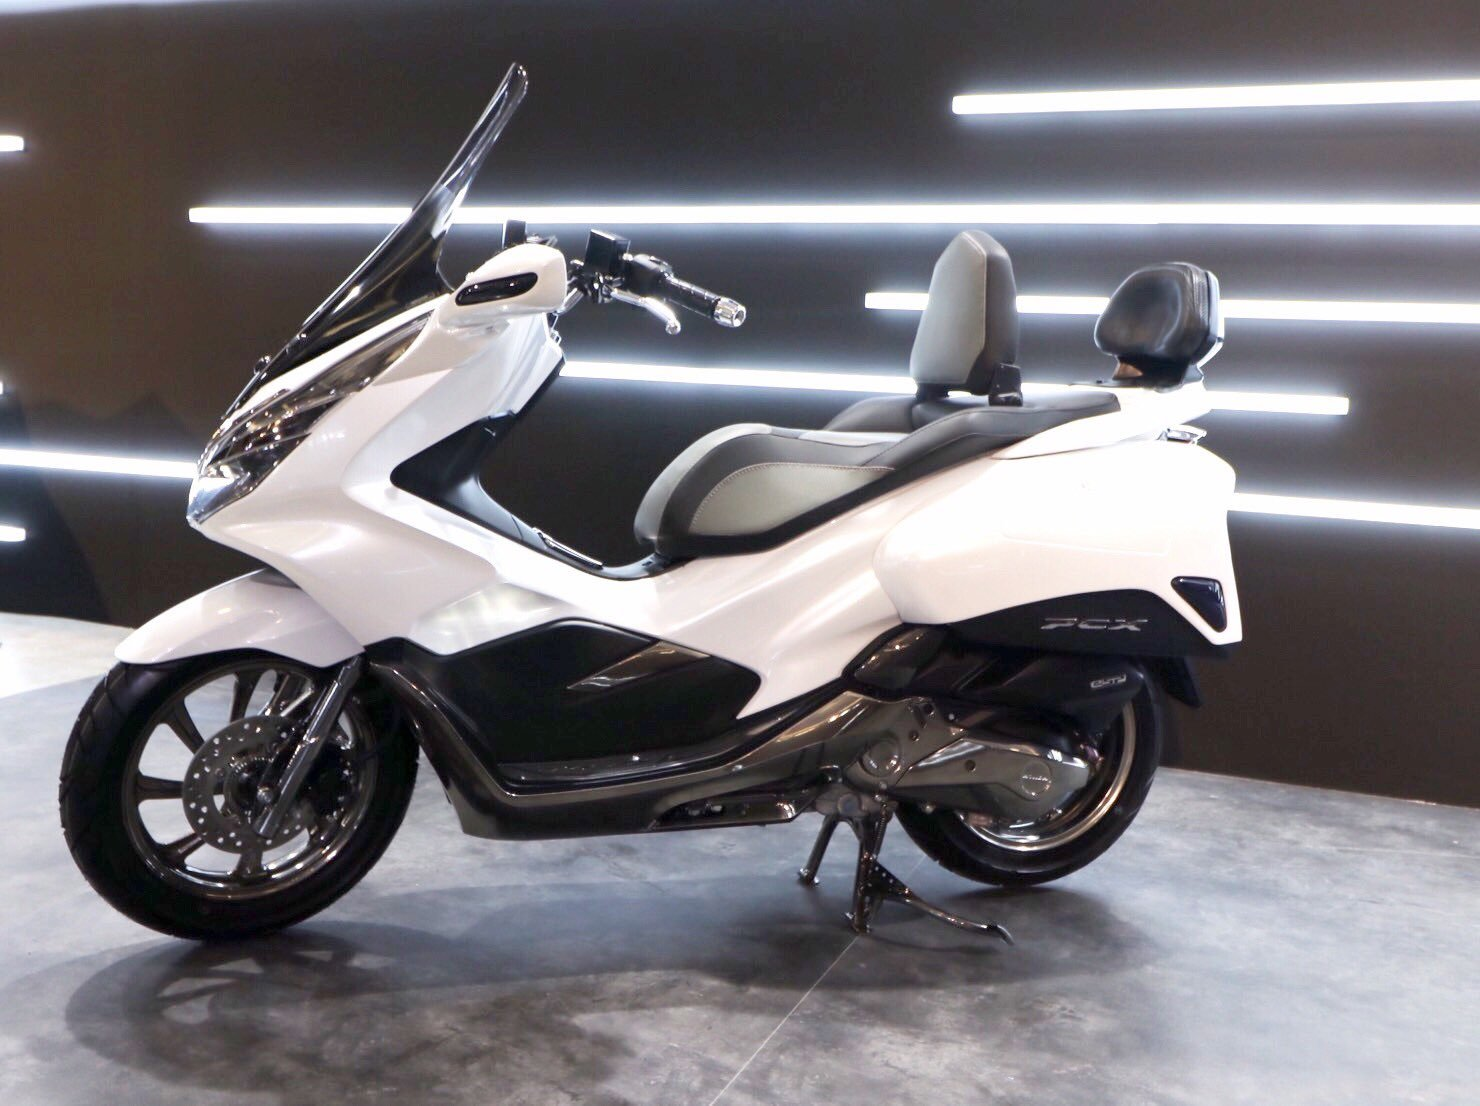 Inspirasi Modifikasi All New Honda PCX150 Ala AHM Seneng Yang Mana